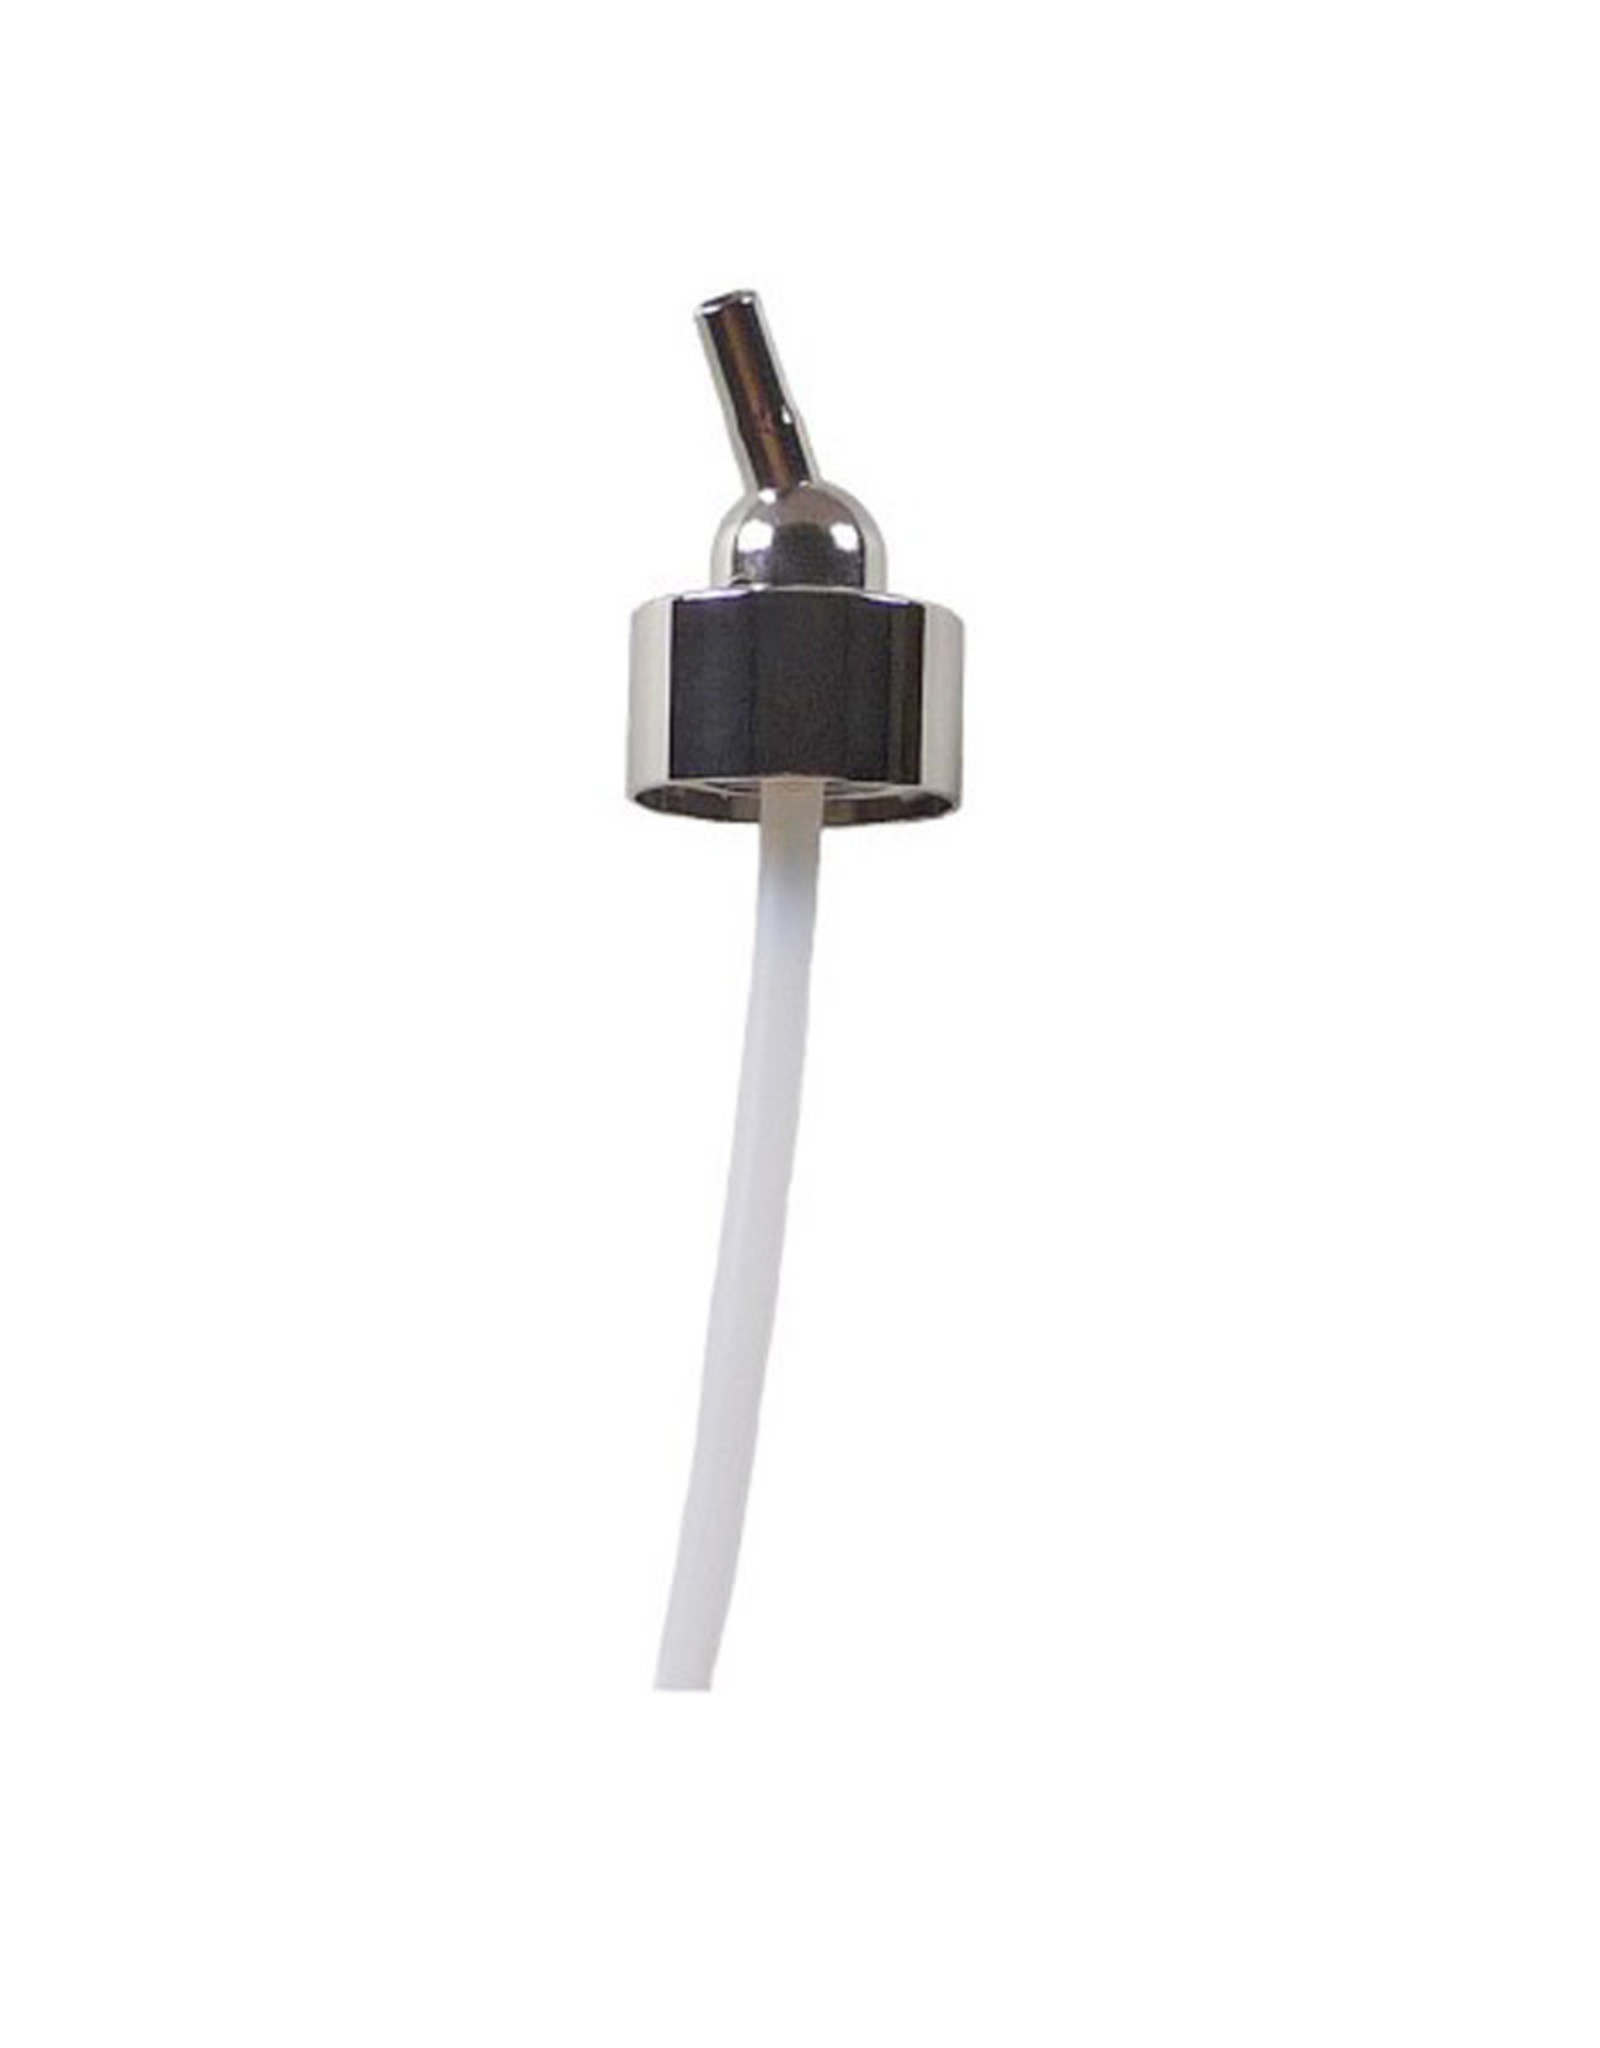 Harder & Steenbeck Adaptor with hose for bottle 30 ml for X-models (suction feed)